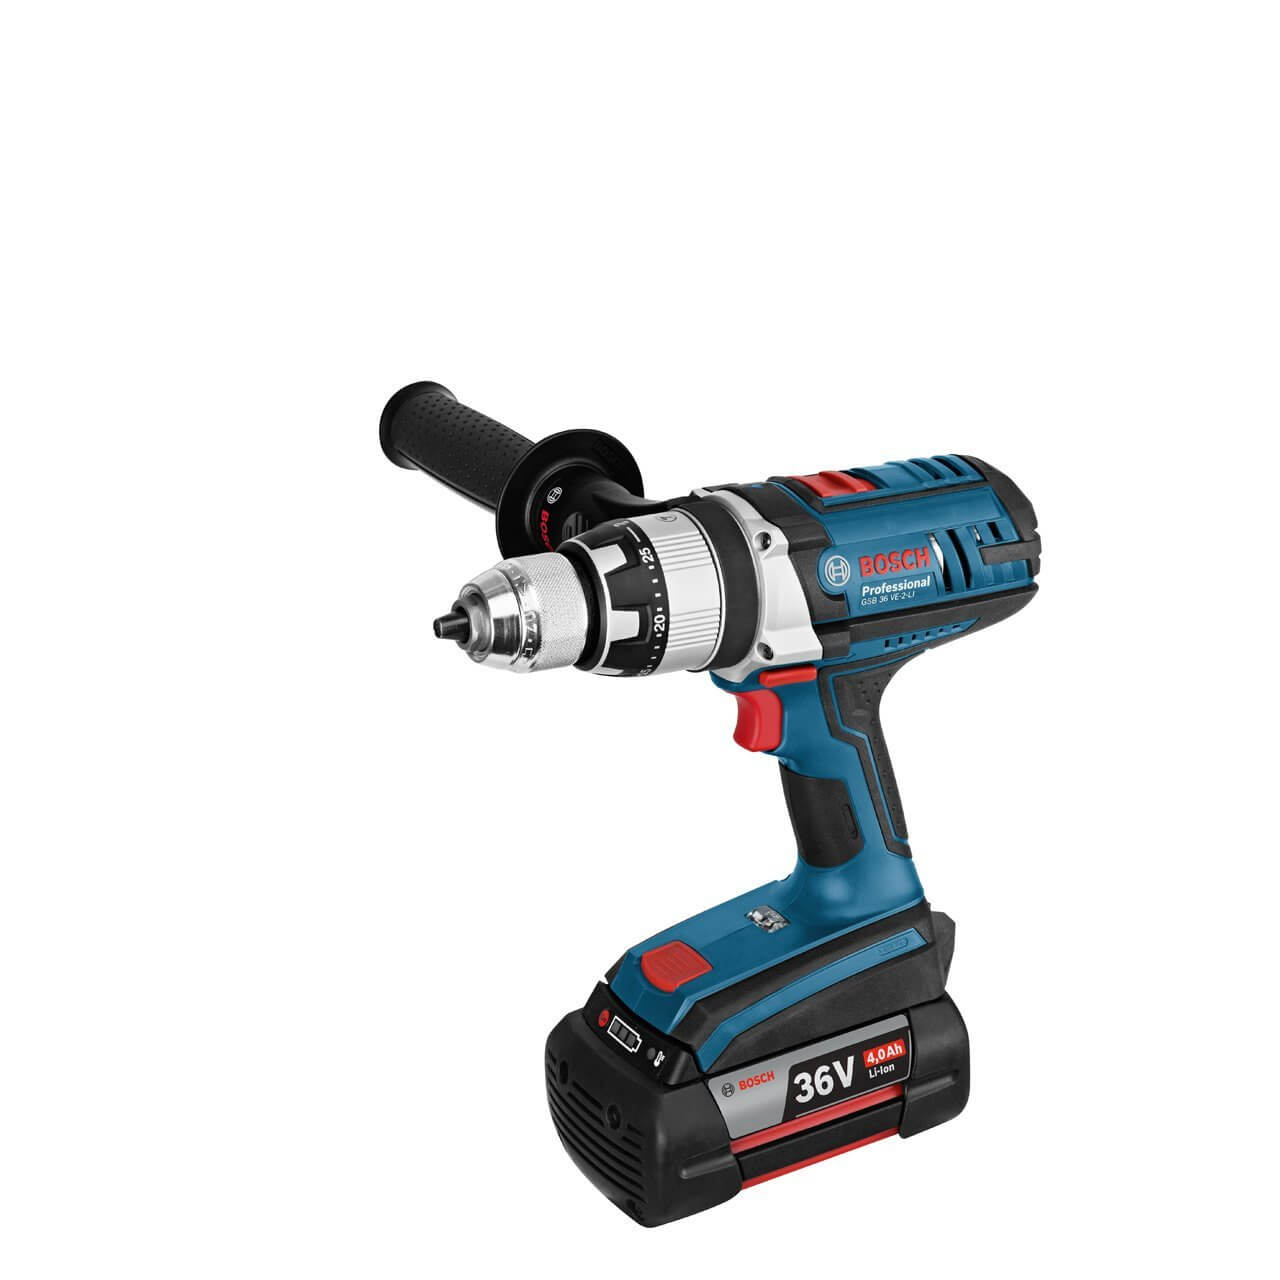 bosch-gsb-36-ve-li-1 Black & Decker EPC14CABK Perceuse sans fil